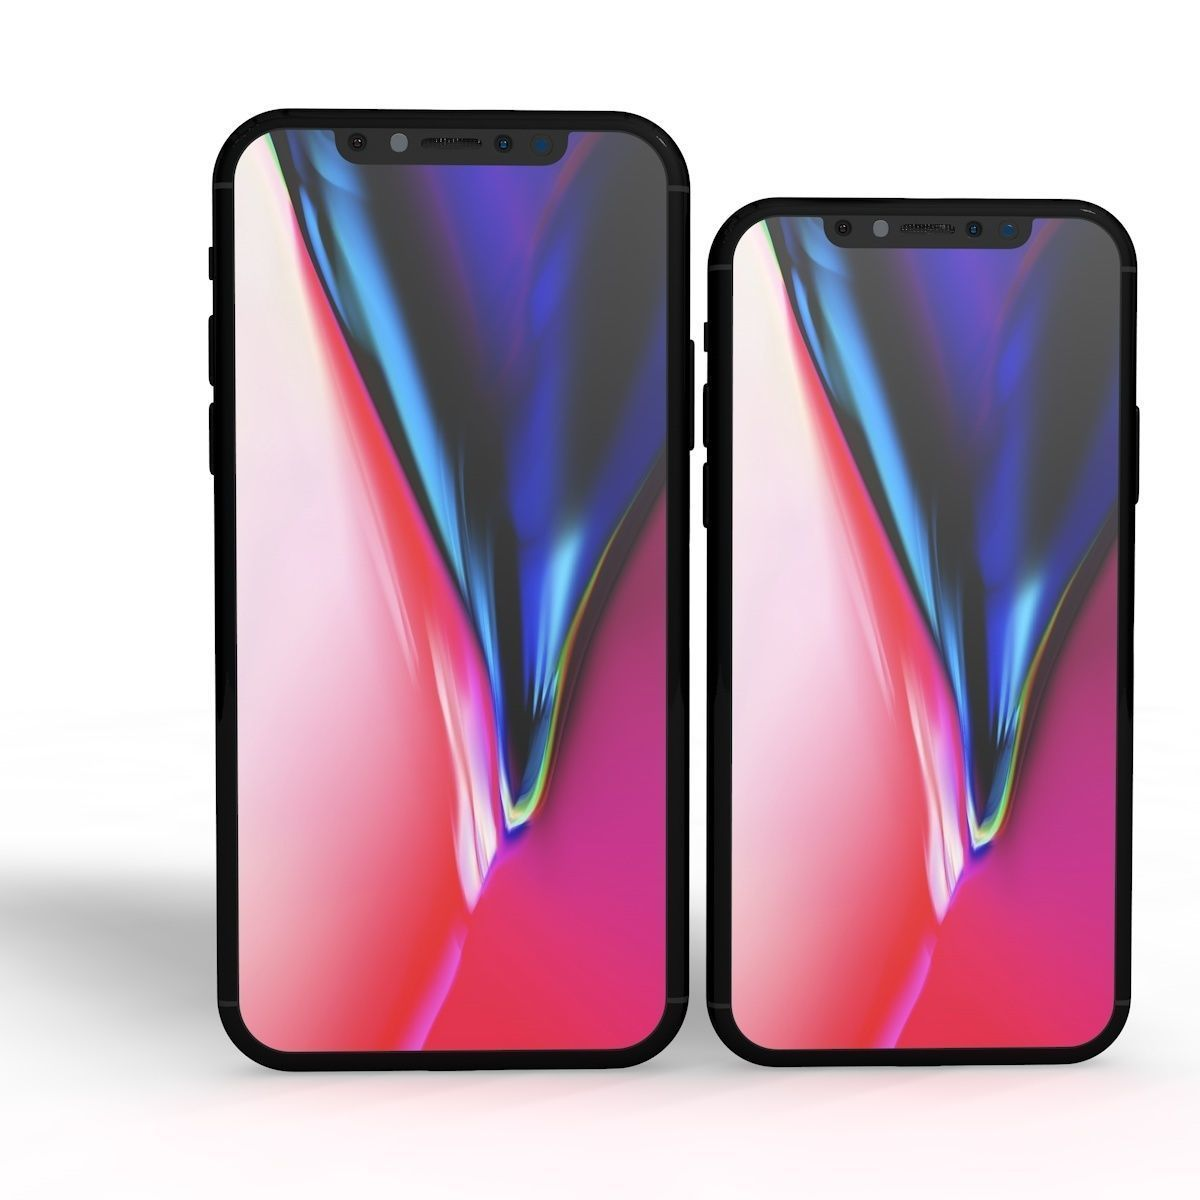 Iphone 11 and 11 plus Model